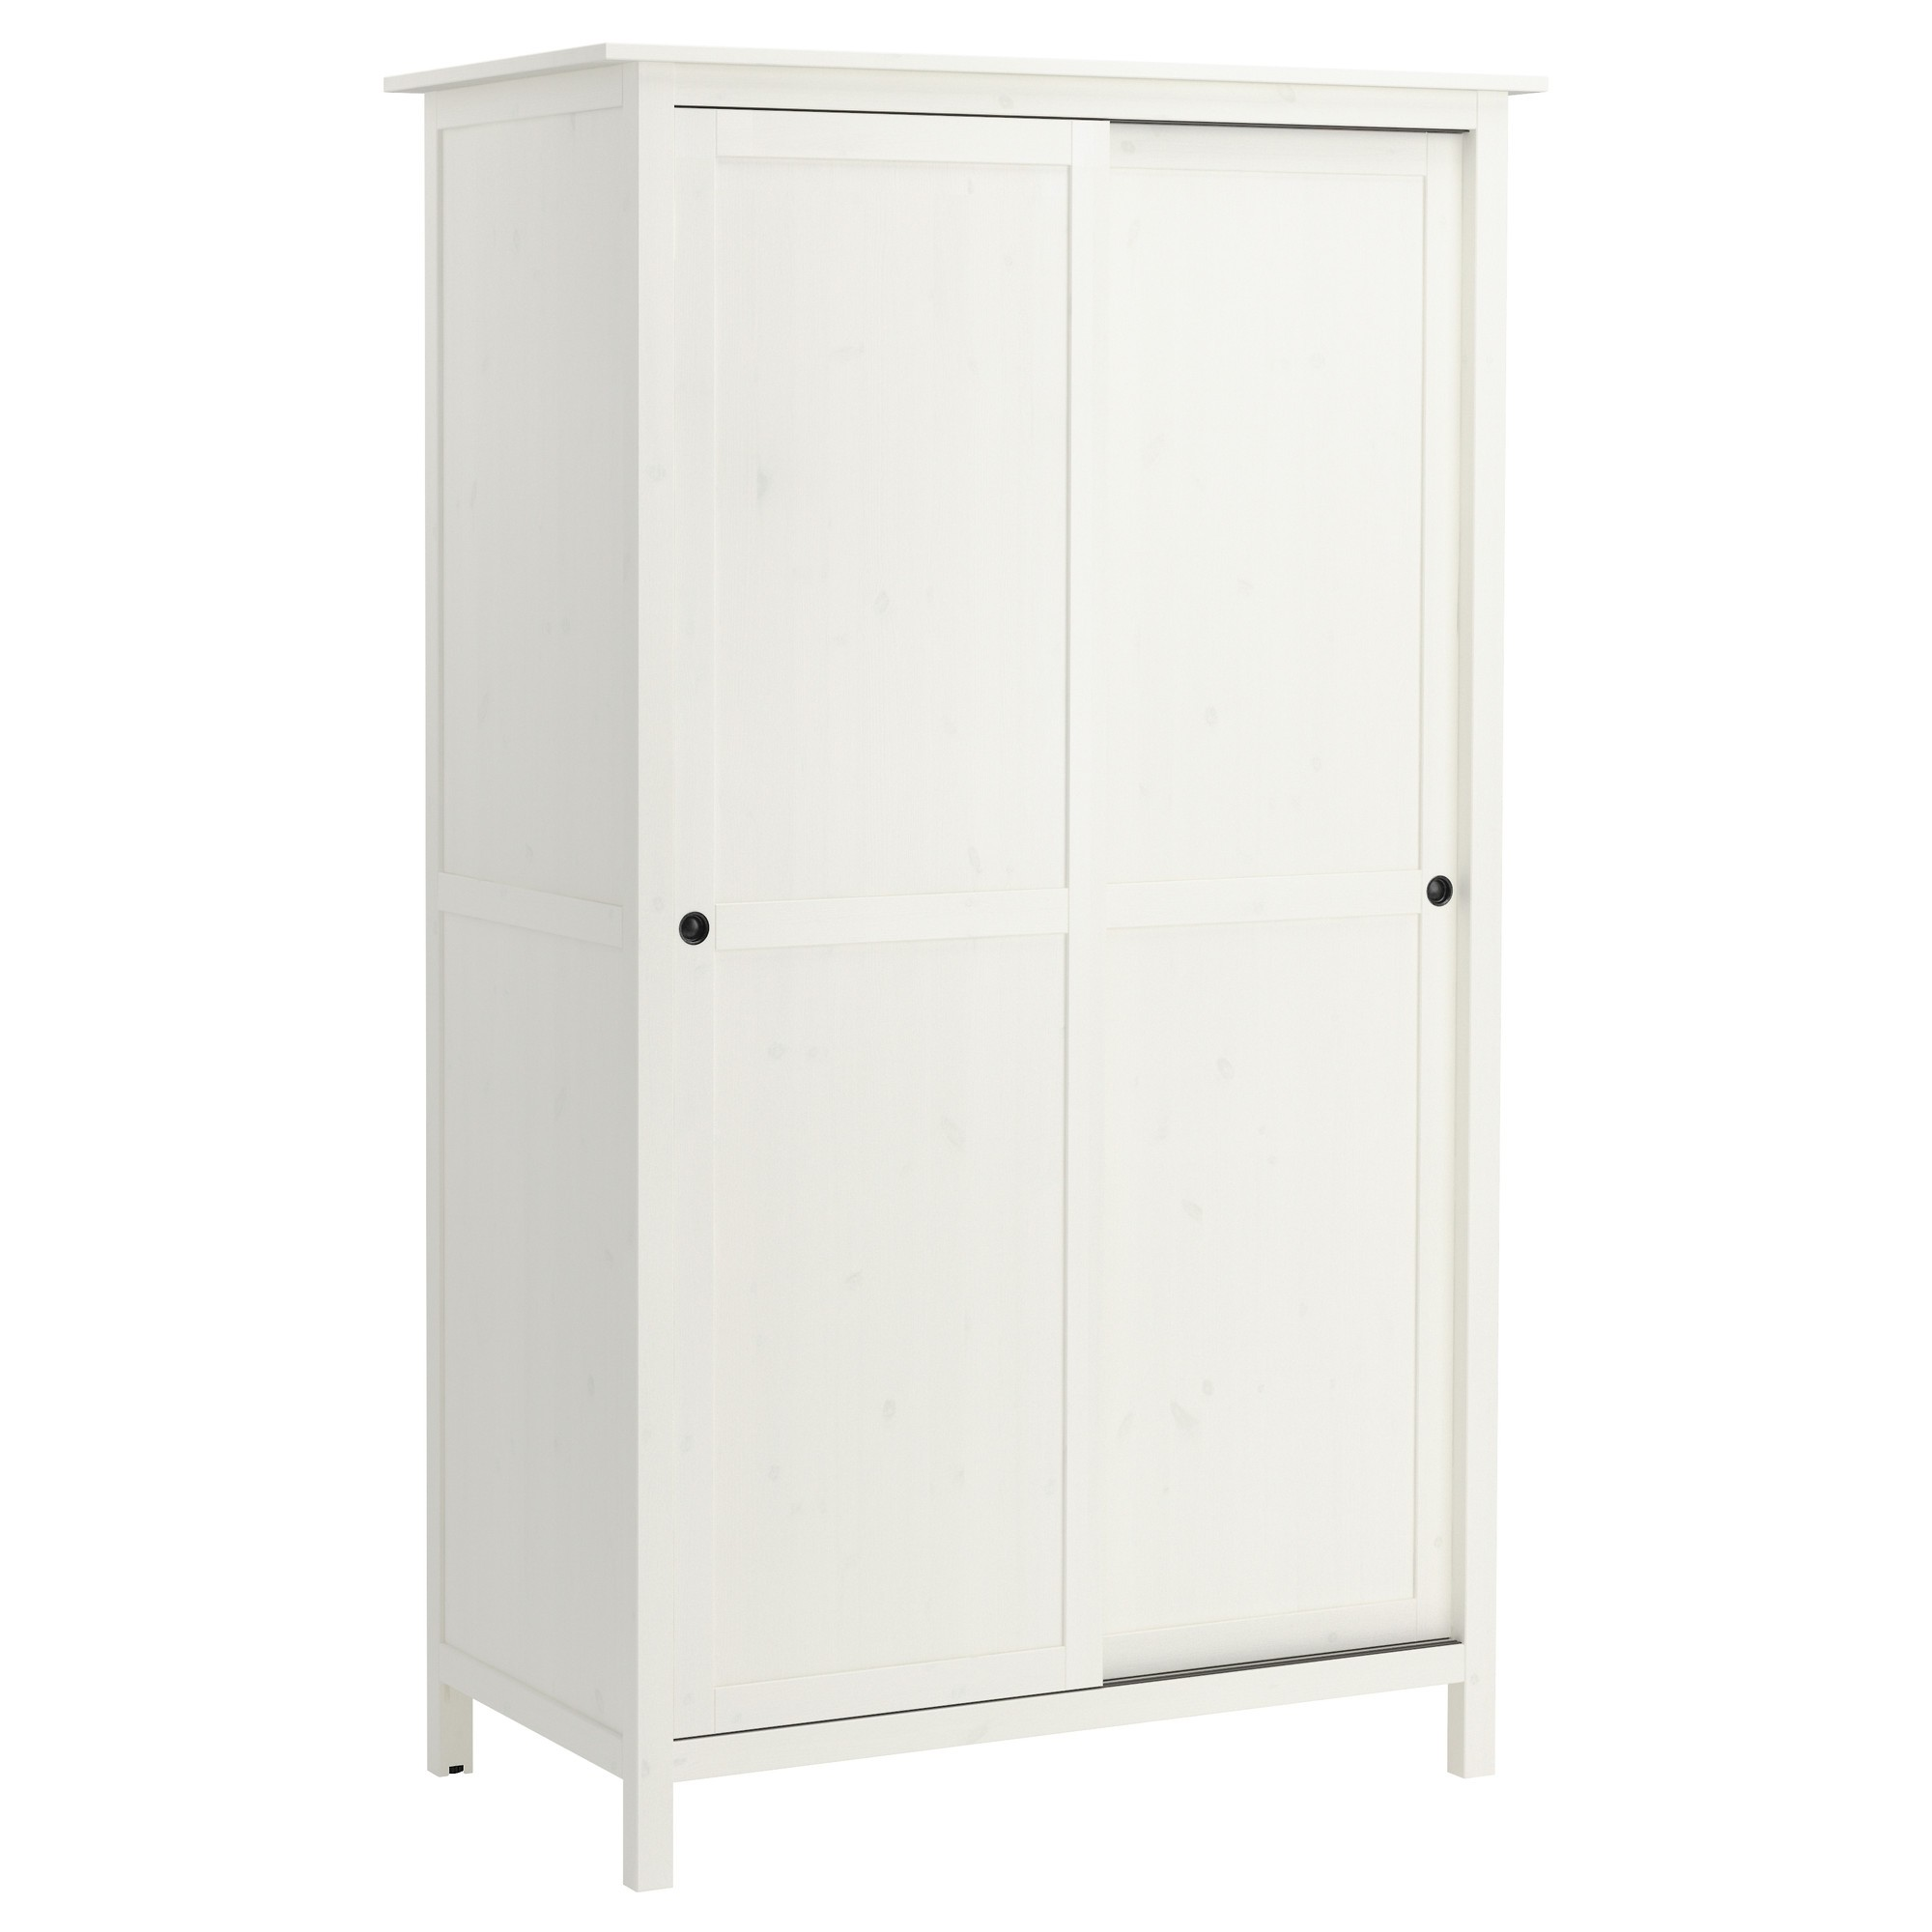 Simple finest armoire porte coulissante ikea with armoire for Armoire une porte ikea